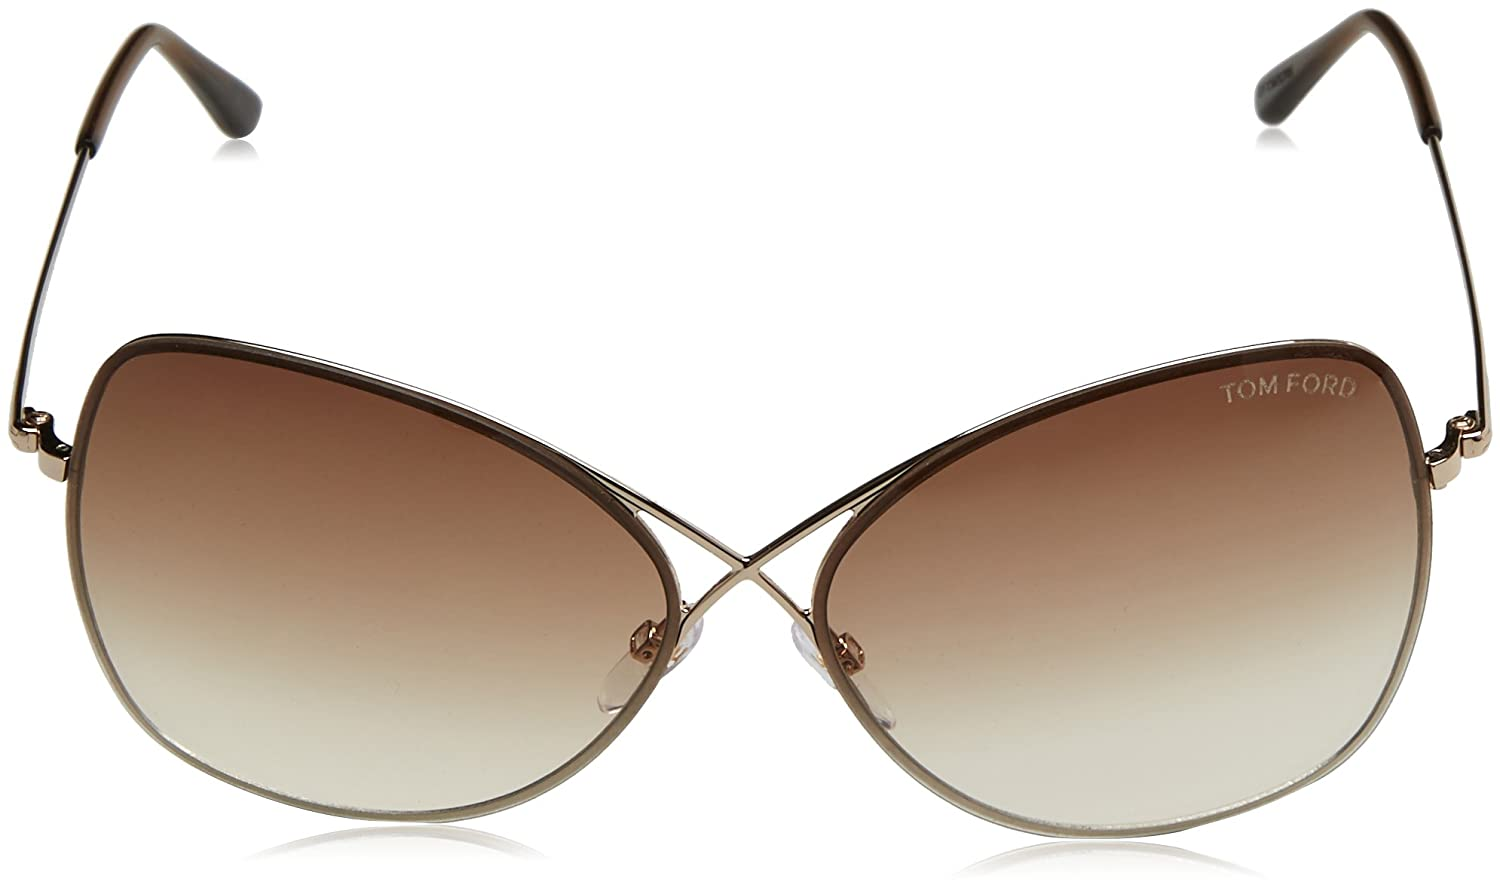 745c1c14fea5 Amazon.com  Tom Ford Sunglasses TF 250 BRONZE 48F Collete  Tom Ford   Clothing